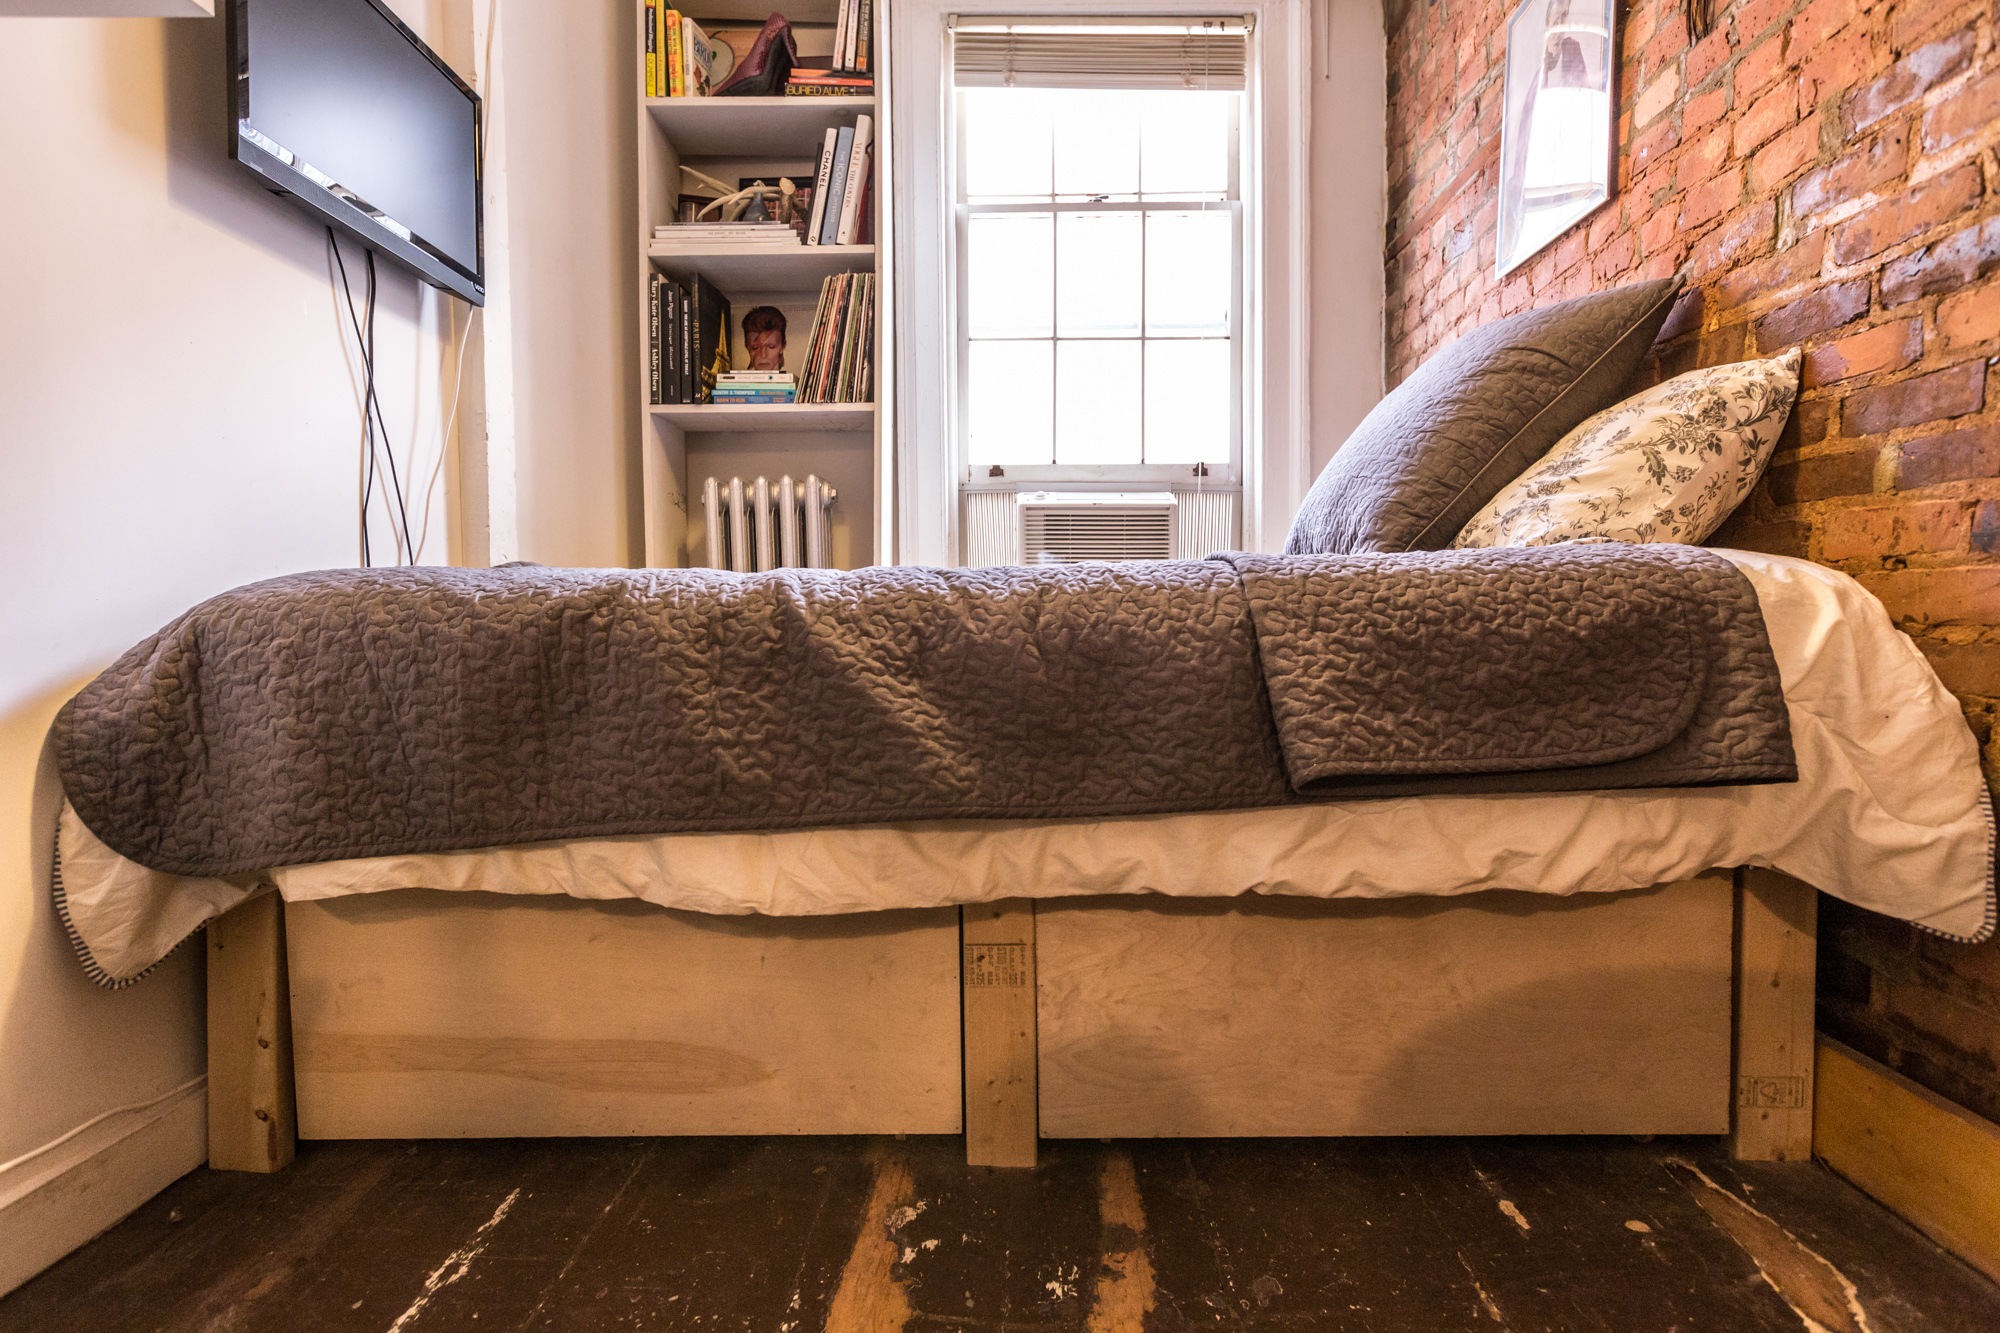 See more tiny New York homes  On Hidden Pomander Walk  A Cozy Home Fit For  A Fairy Tale   Tour a Totally Livable 242 Square Foot West Village Apartment. How One New Yorker Lives Comfortably In 90 Square Feet   Curbed NY